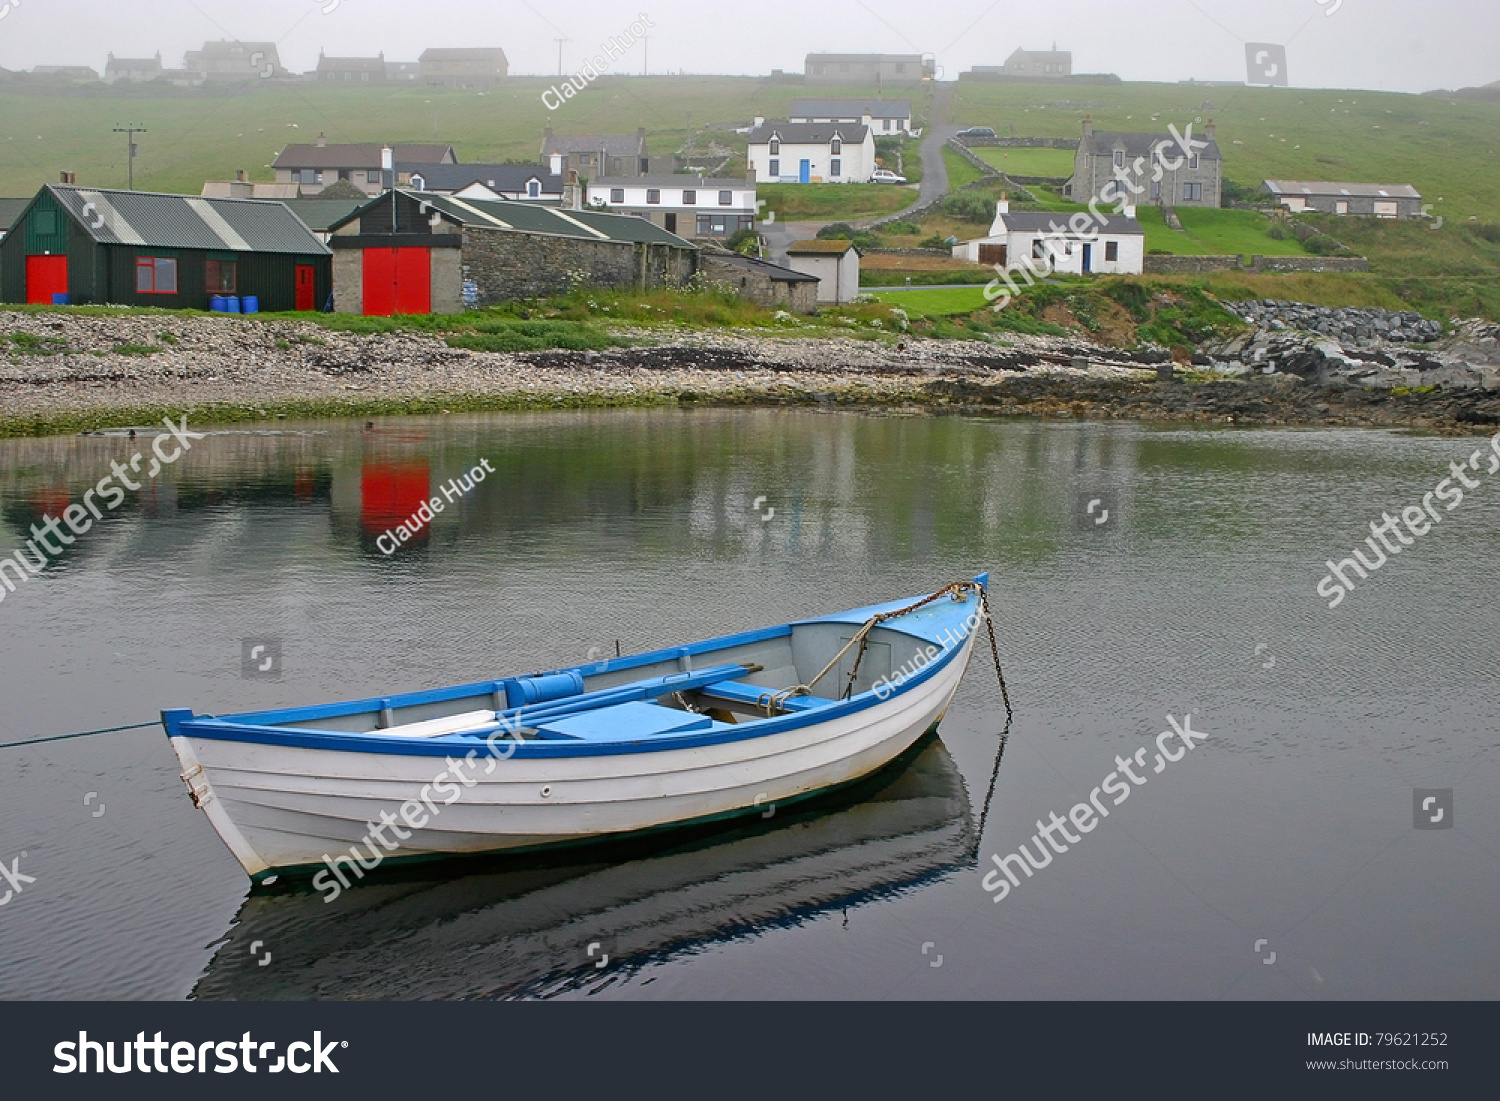 Small boat on a misty day near Lerwick, Shetland Islands part of Scotland in the United Kingdom.